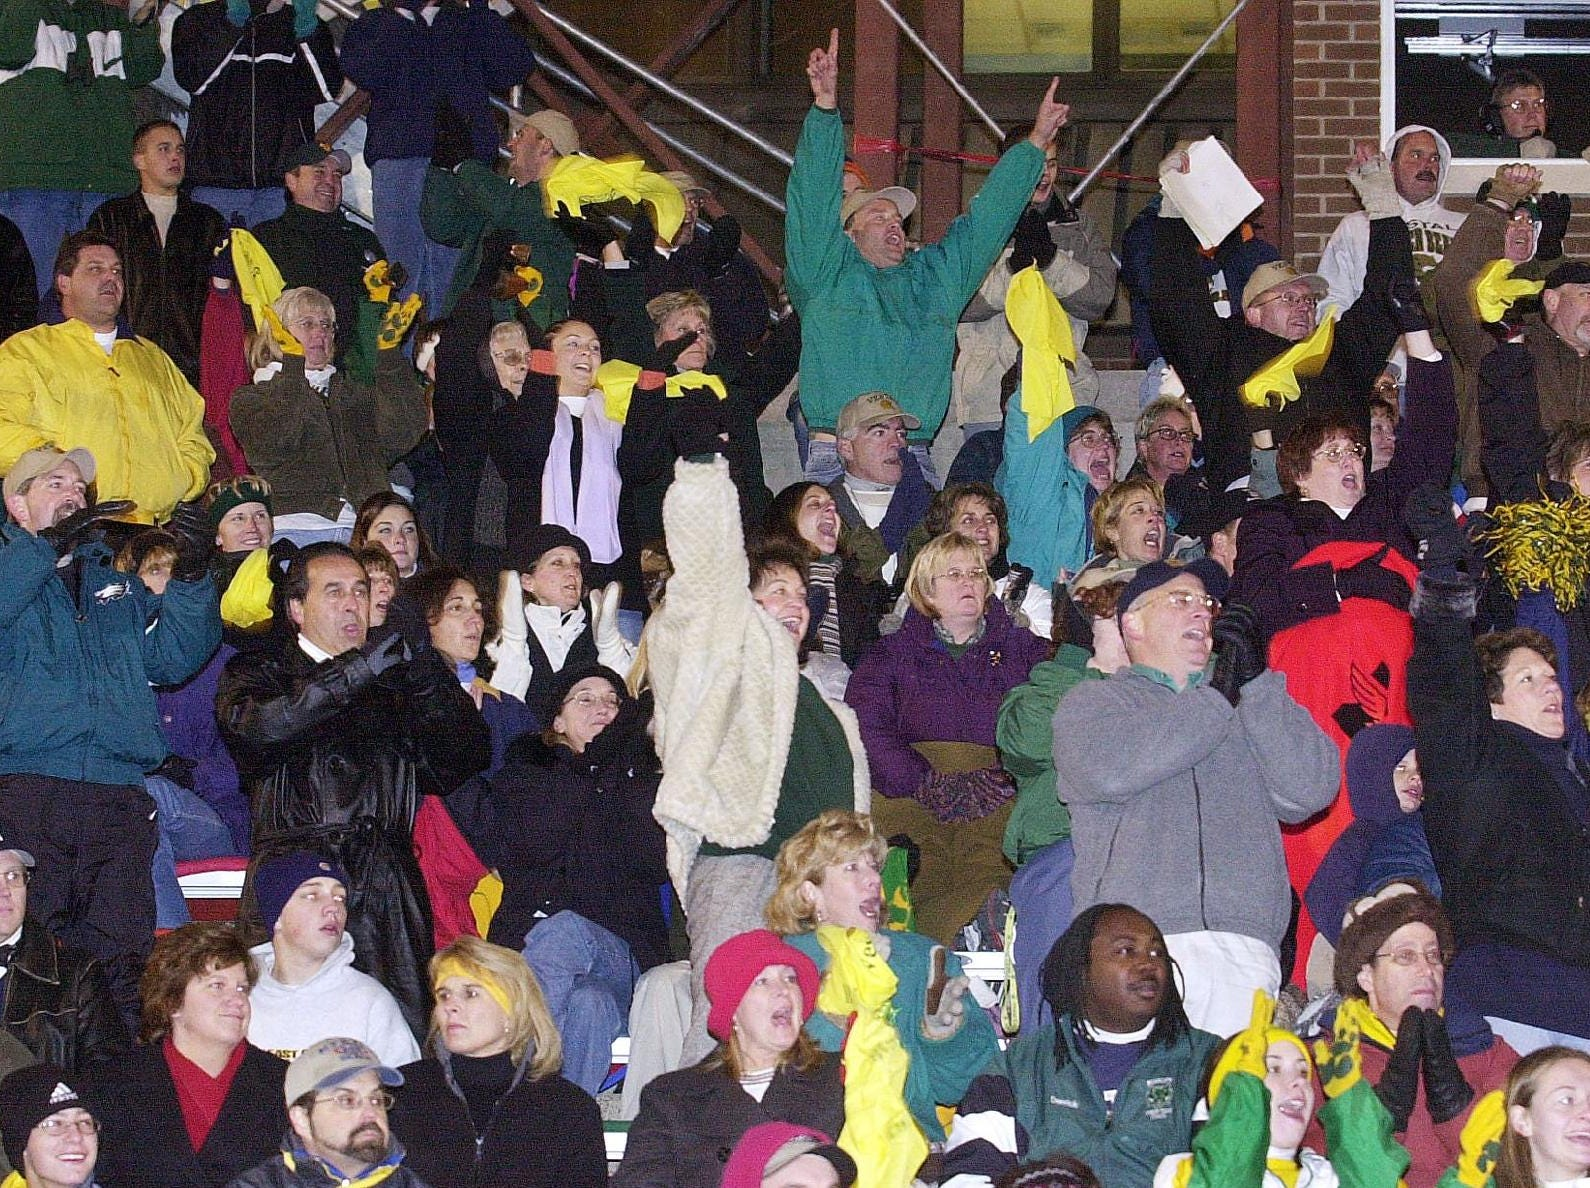 In 2001, Vestal fans cheer on their Golden Bears Football team as they scored the third touchdown of the first half against the Binghamton Patriots in the Section IV Class AA Championship Game held at Union-Endicott High School.